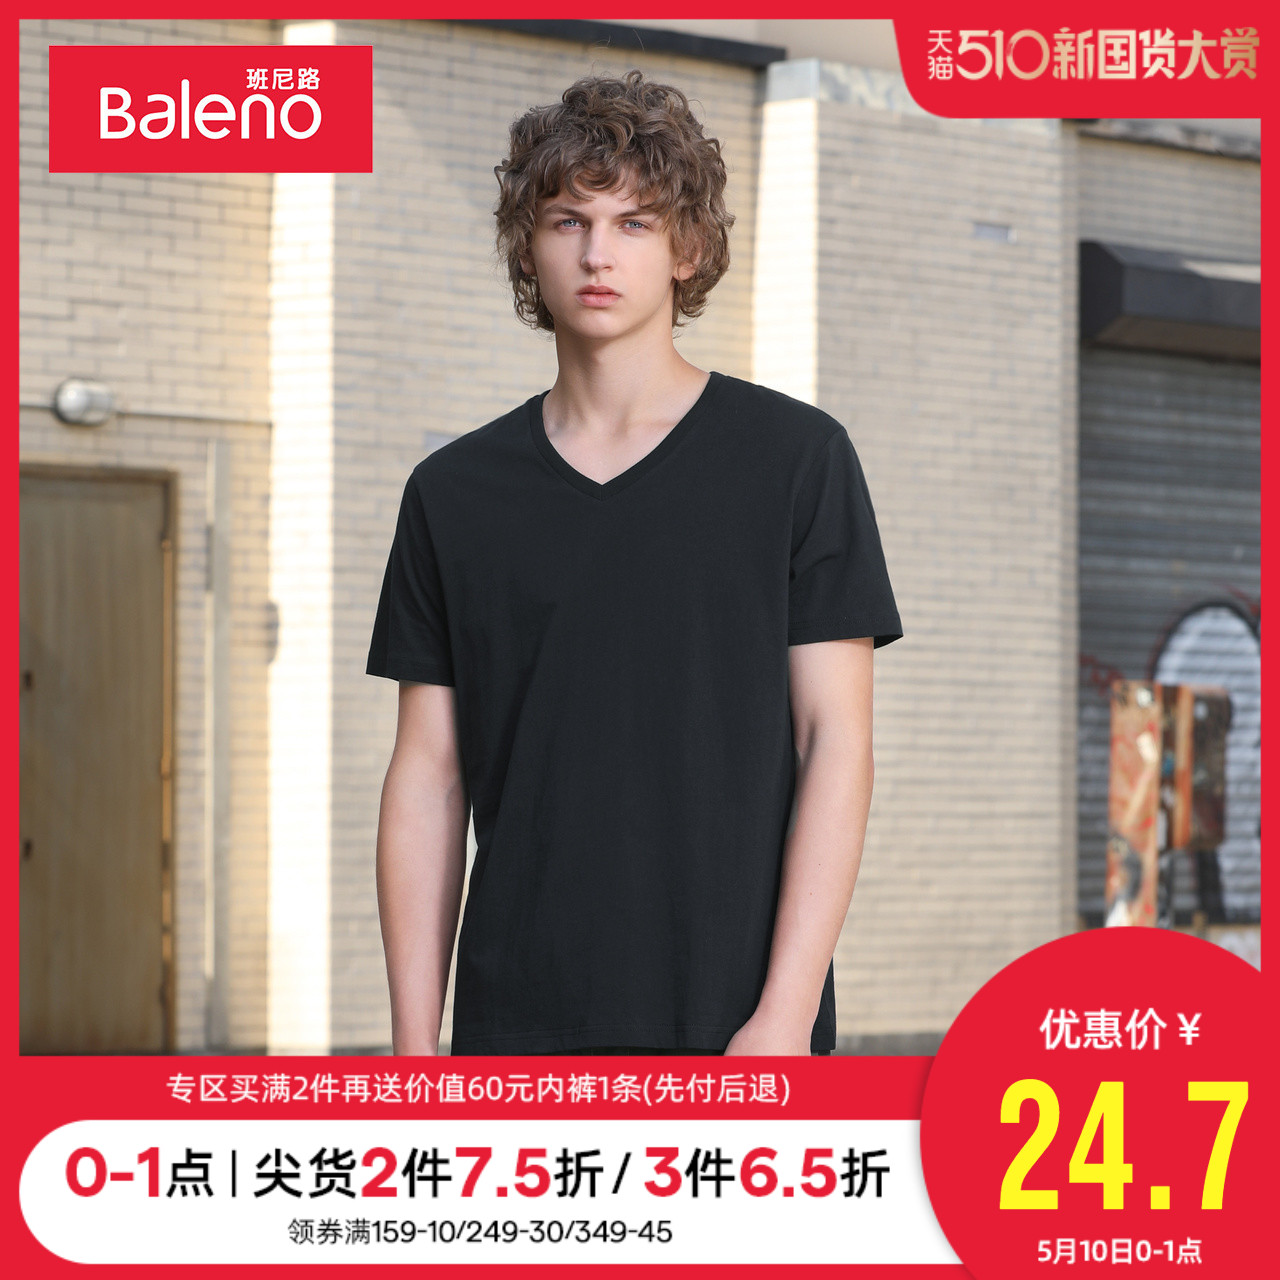 Baleno Benny Road Short-sleeved t-shirt men's summer new solid-colored top v collar t-shirt cotton bottom shirt Z